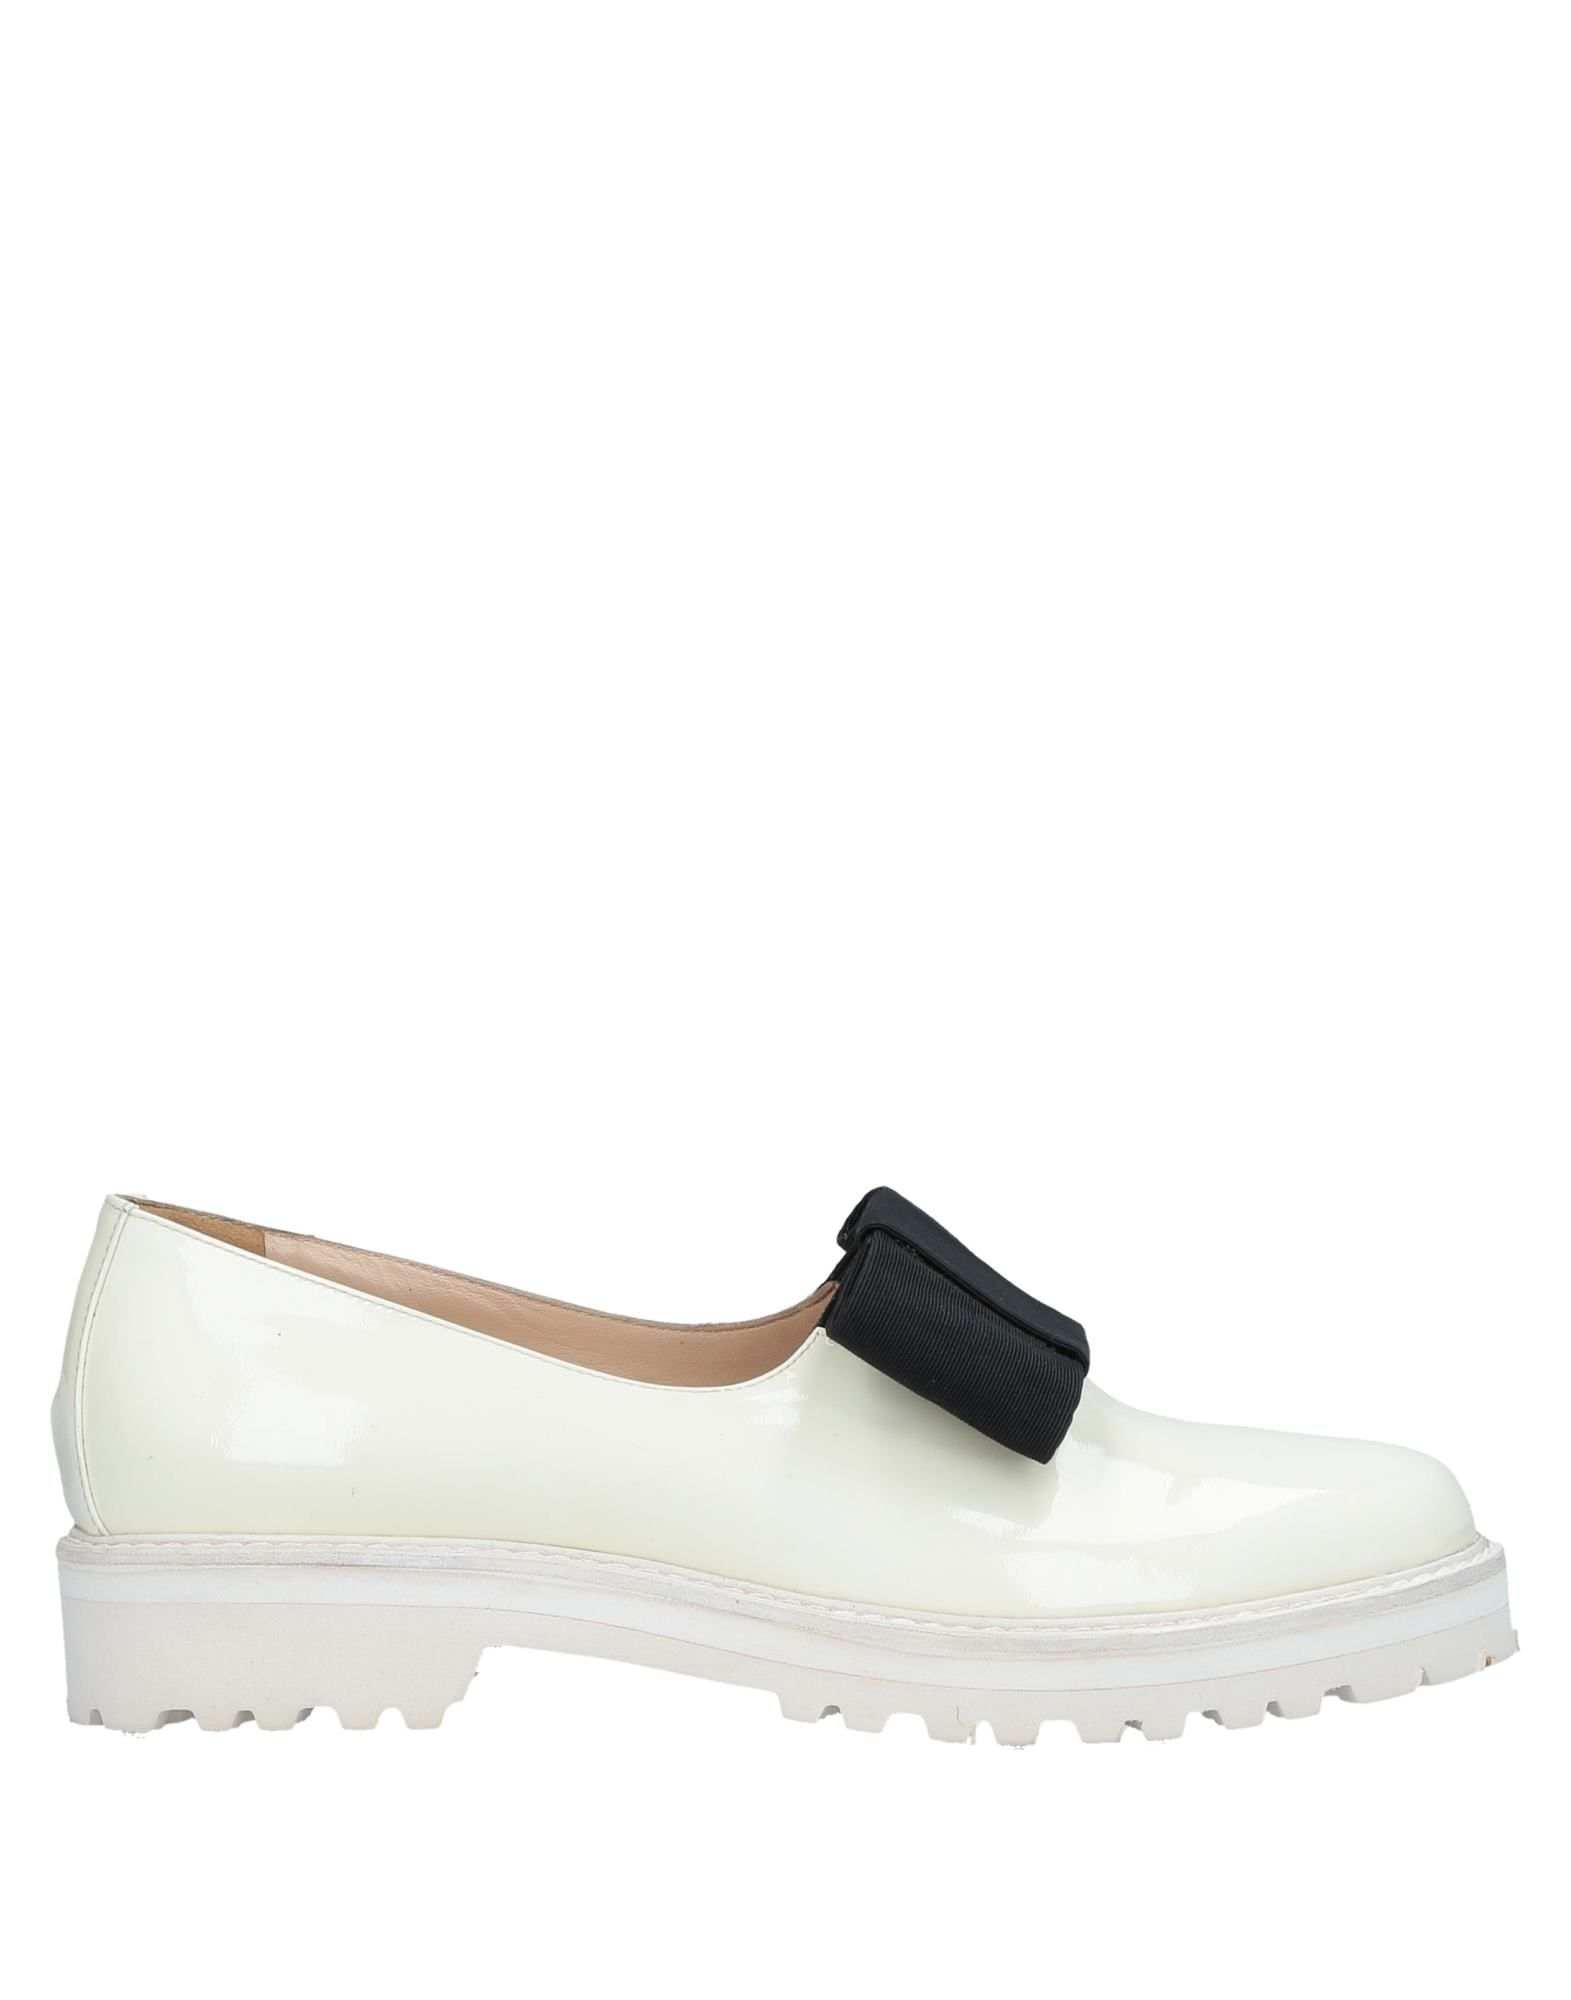 VETIVER Loafers in Beige